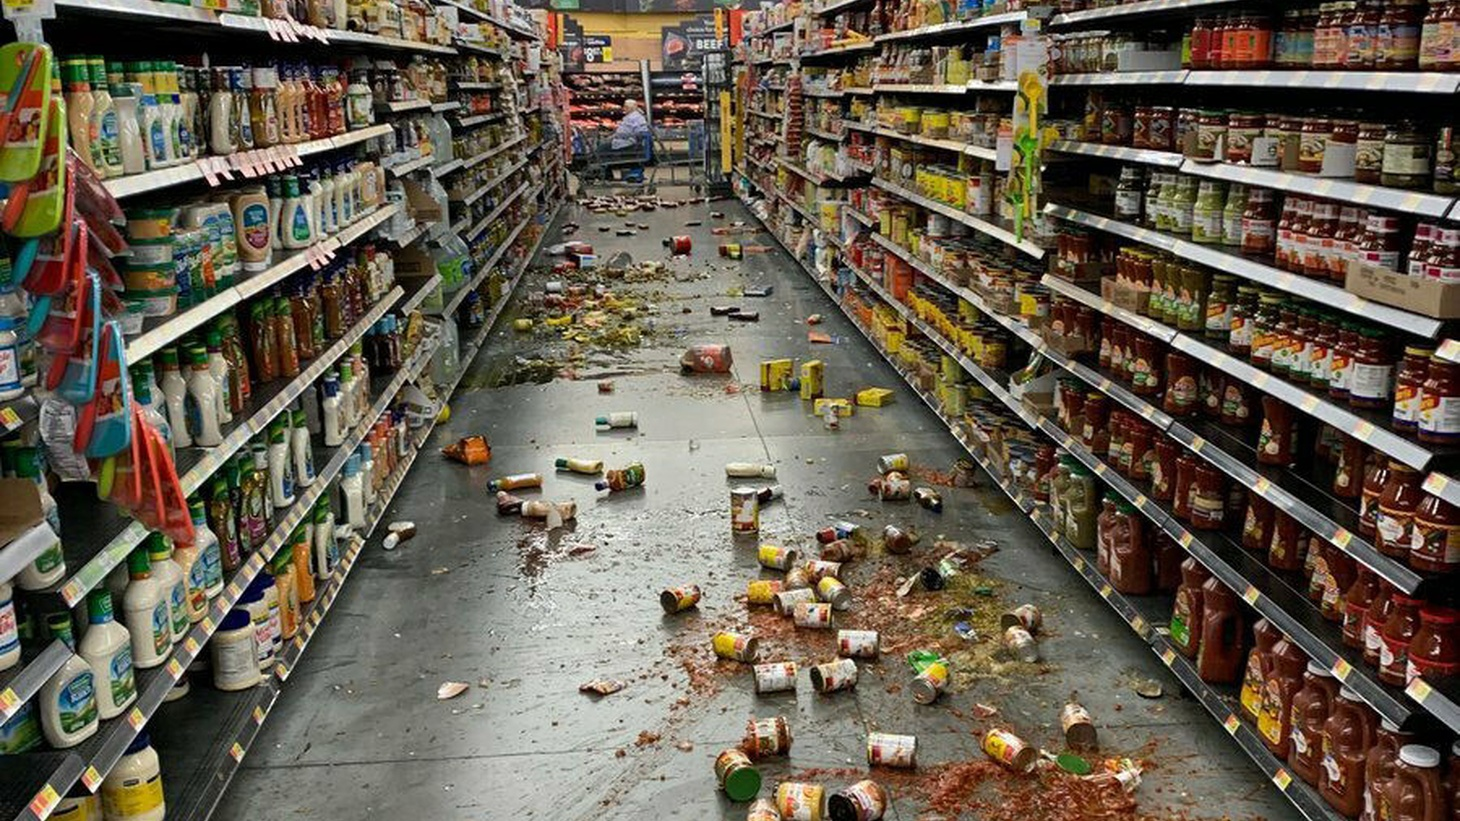 Items spilled all over grocery store in Yucca Valley during the earthquake. July 5, 2019.